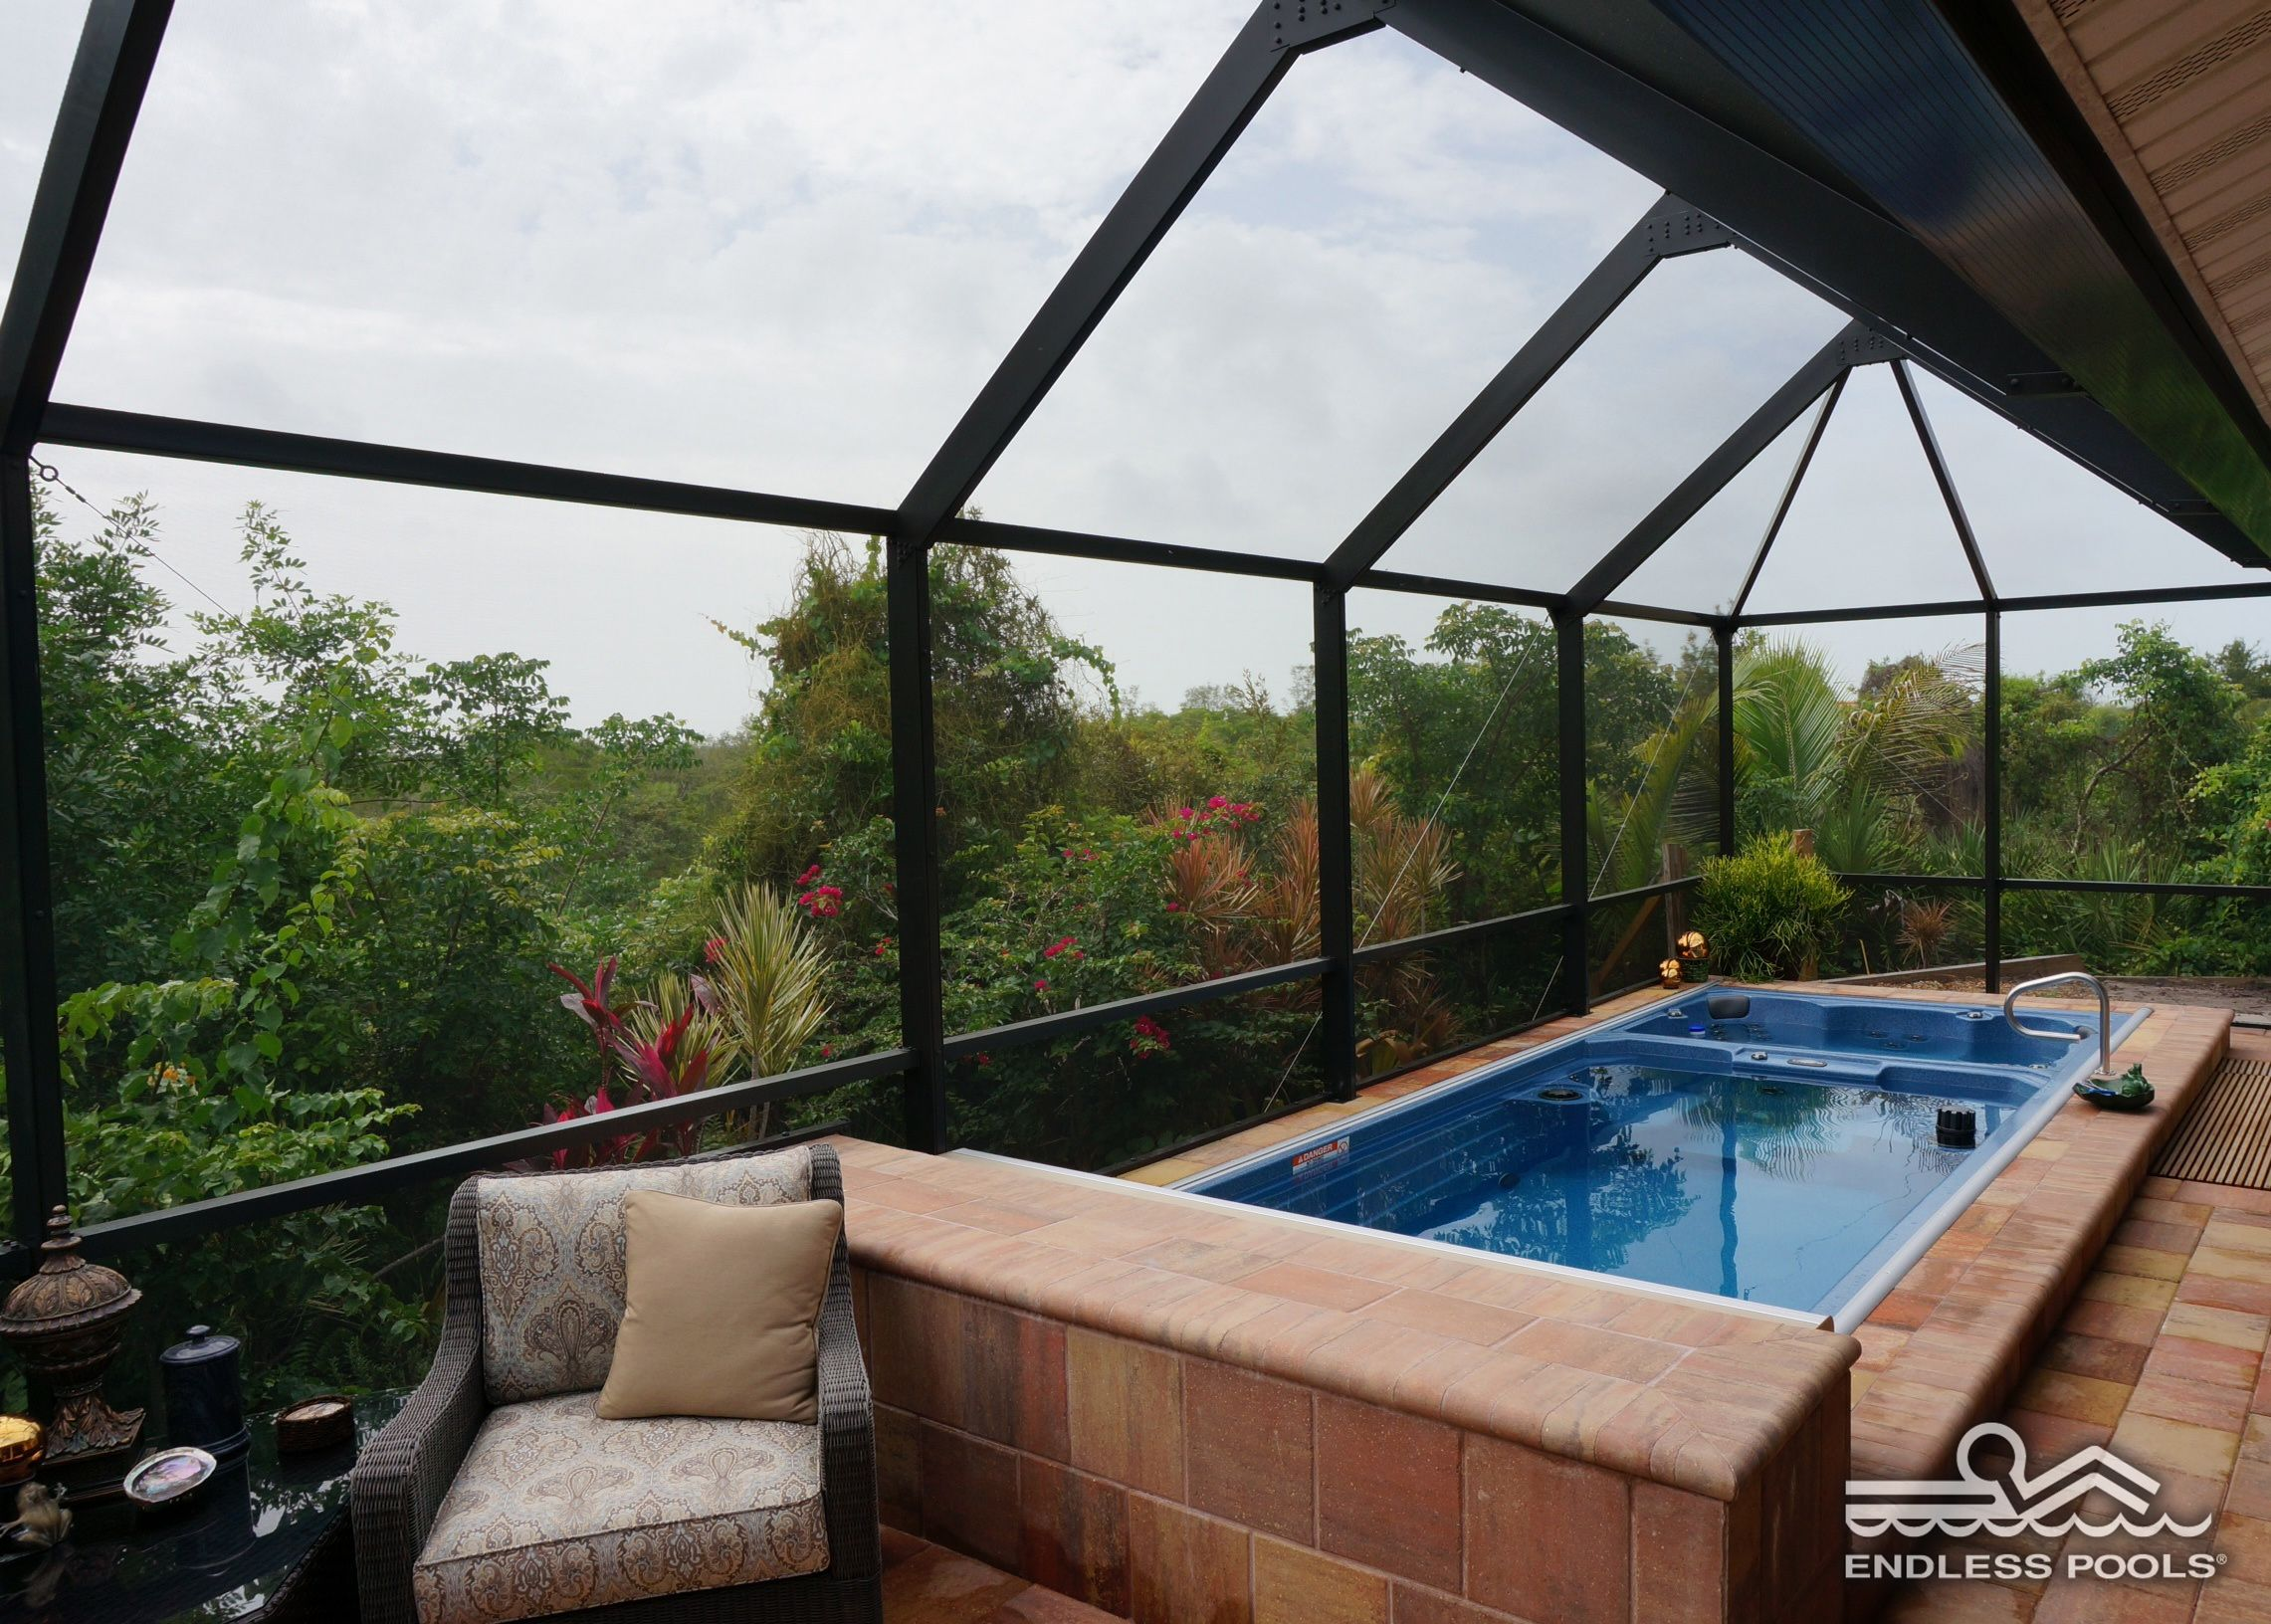 With A 19 39 Dual Temperature Swim Spa You Can Enjoy Exercise And Relaxation With Friends And